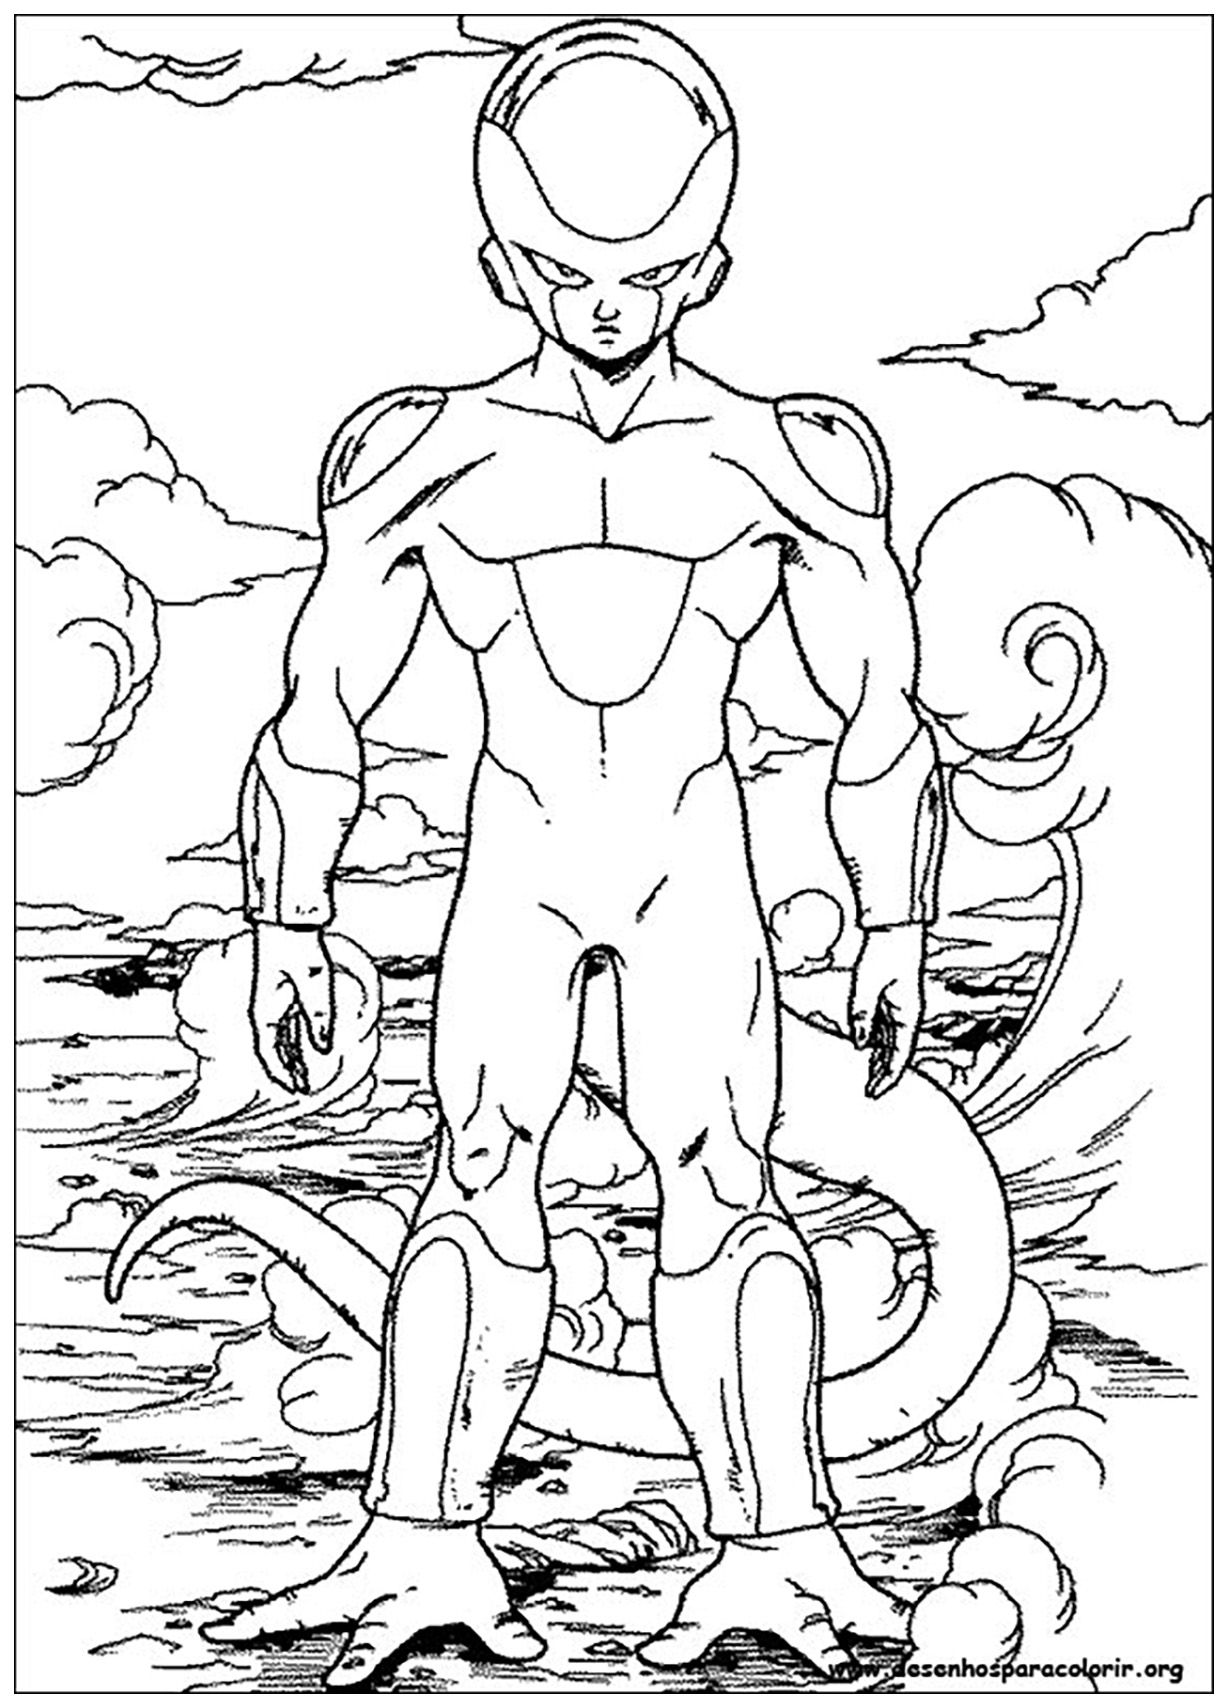 Simple Dragon Ball Z Coloring Page For Children From The Gallery Dragon Ball Z Dragon Coloring Page Dragon Ball Artwork Super Coloring Pages